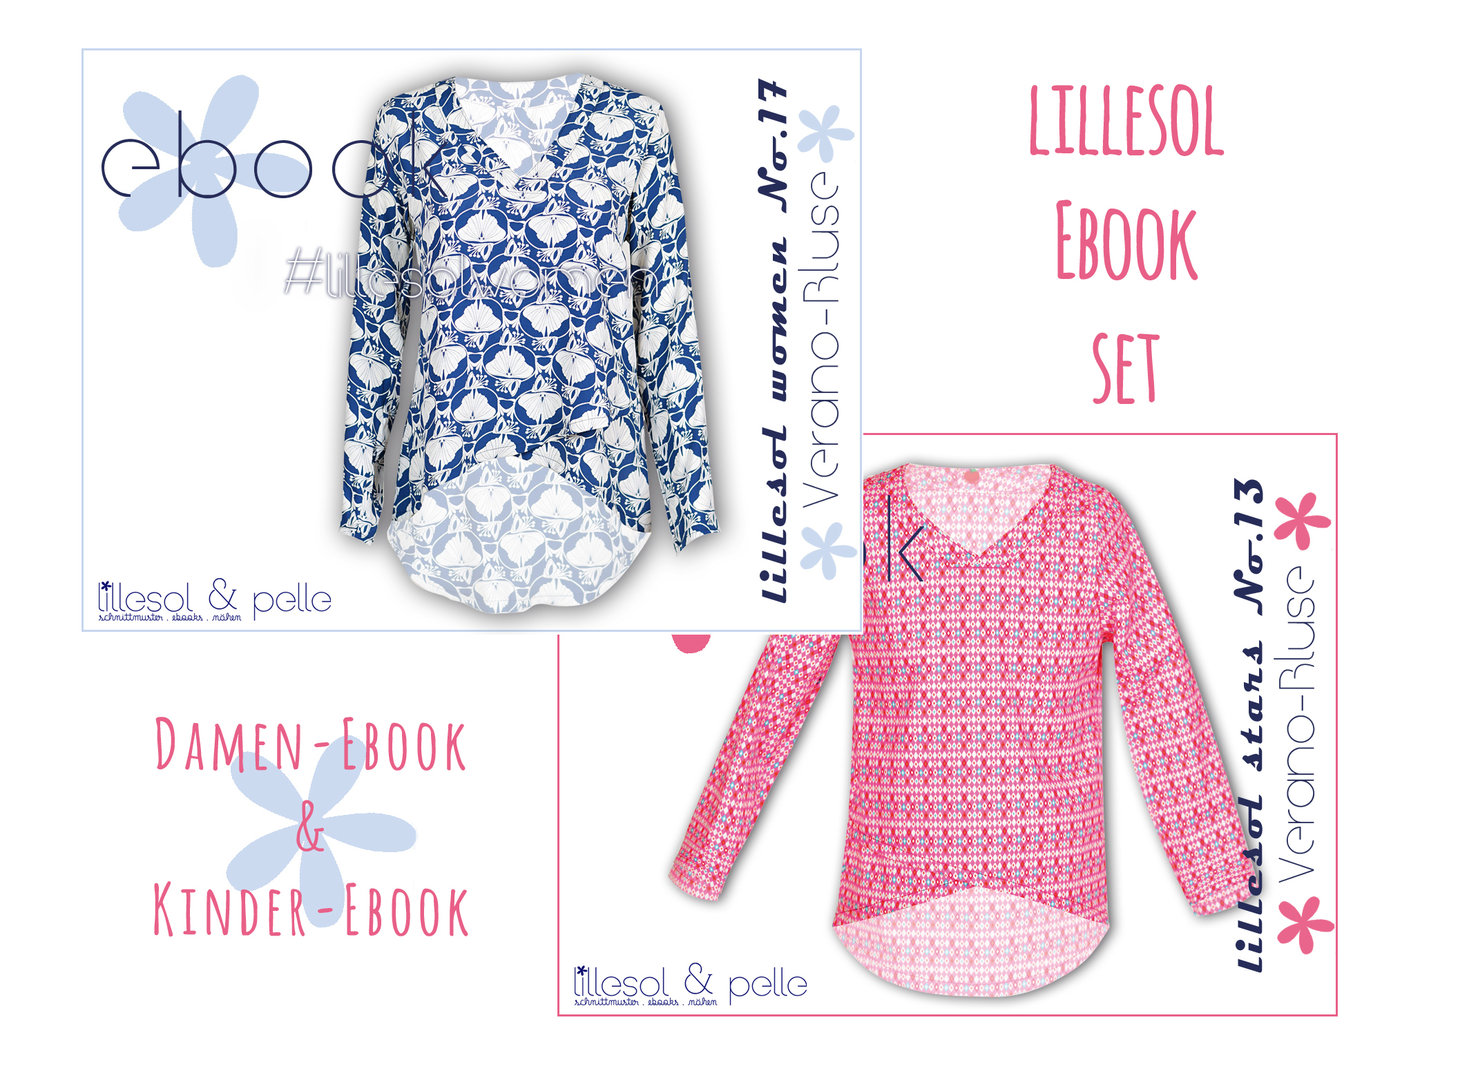 lillesol ebook set stars No.13 und women No.17